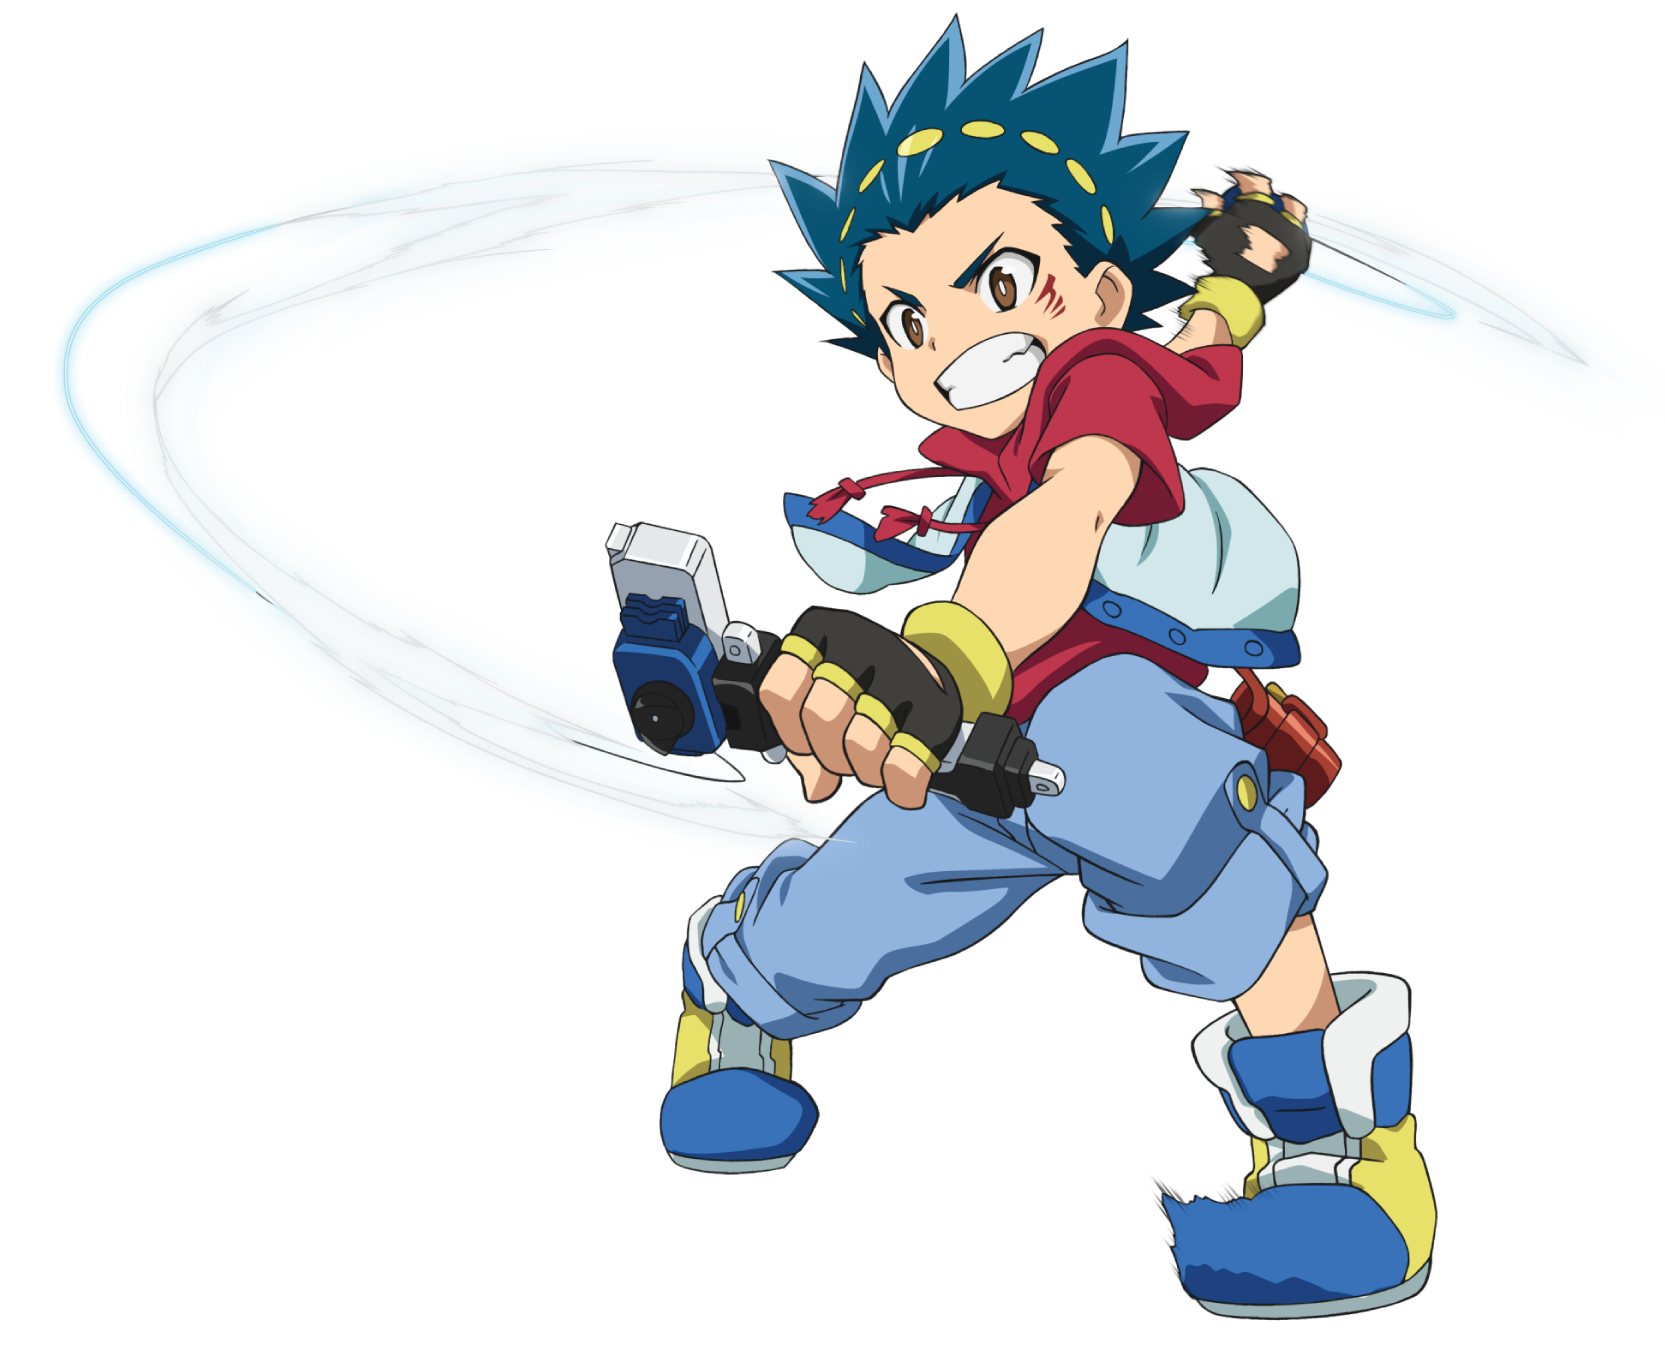 Toy Beyblade: Metal Spinning Youtube Fusion Tops PNG Image